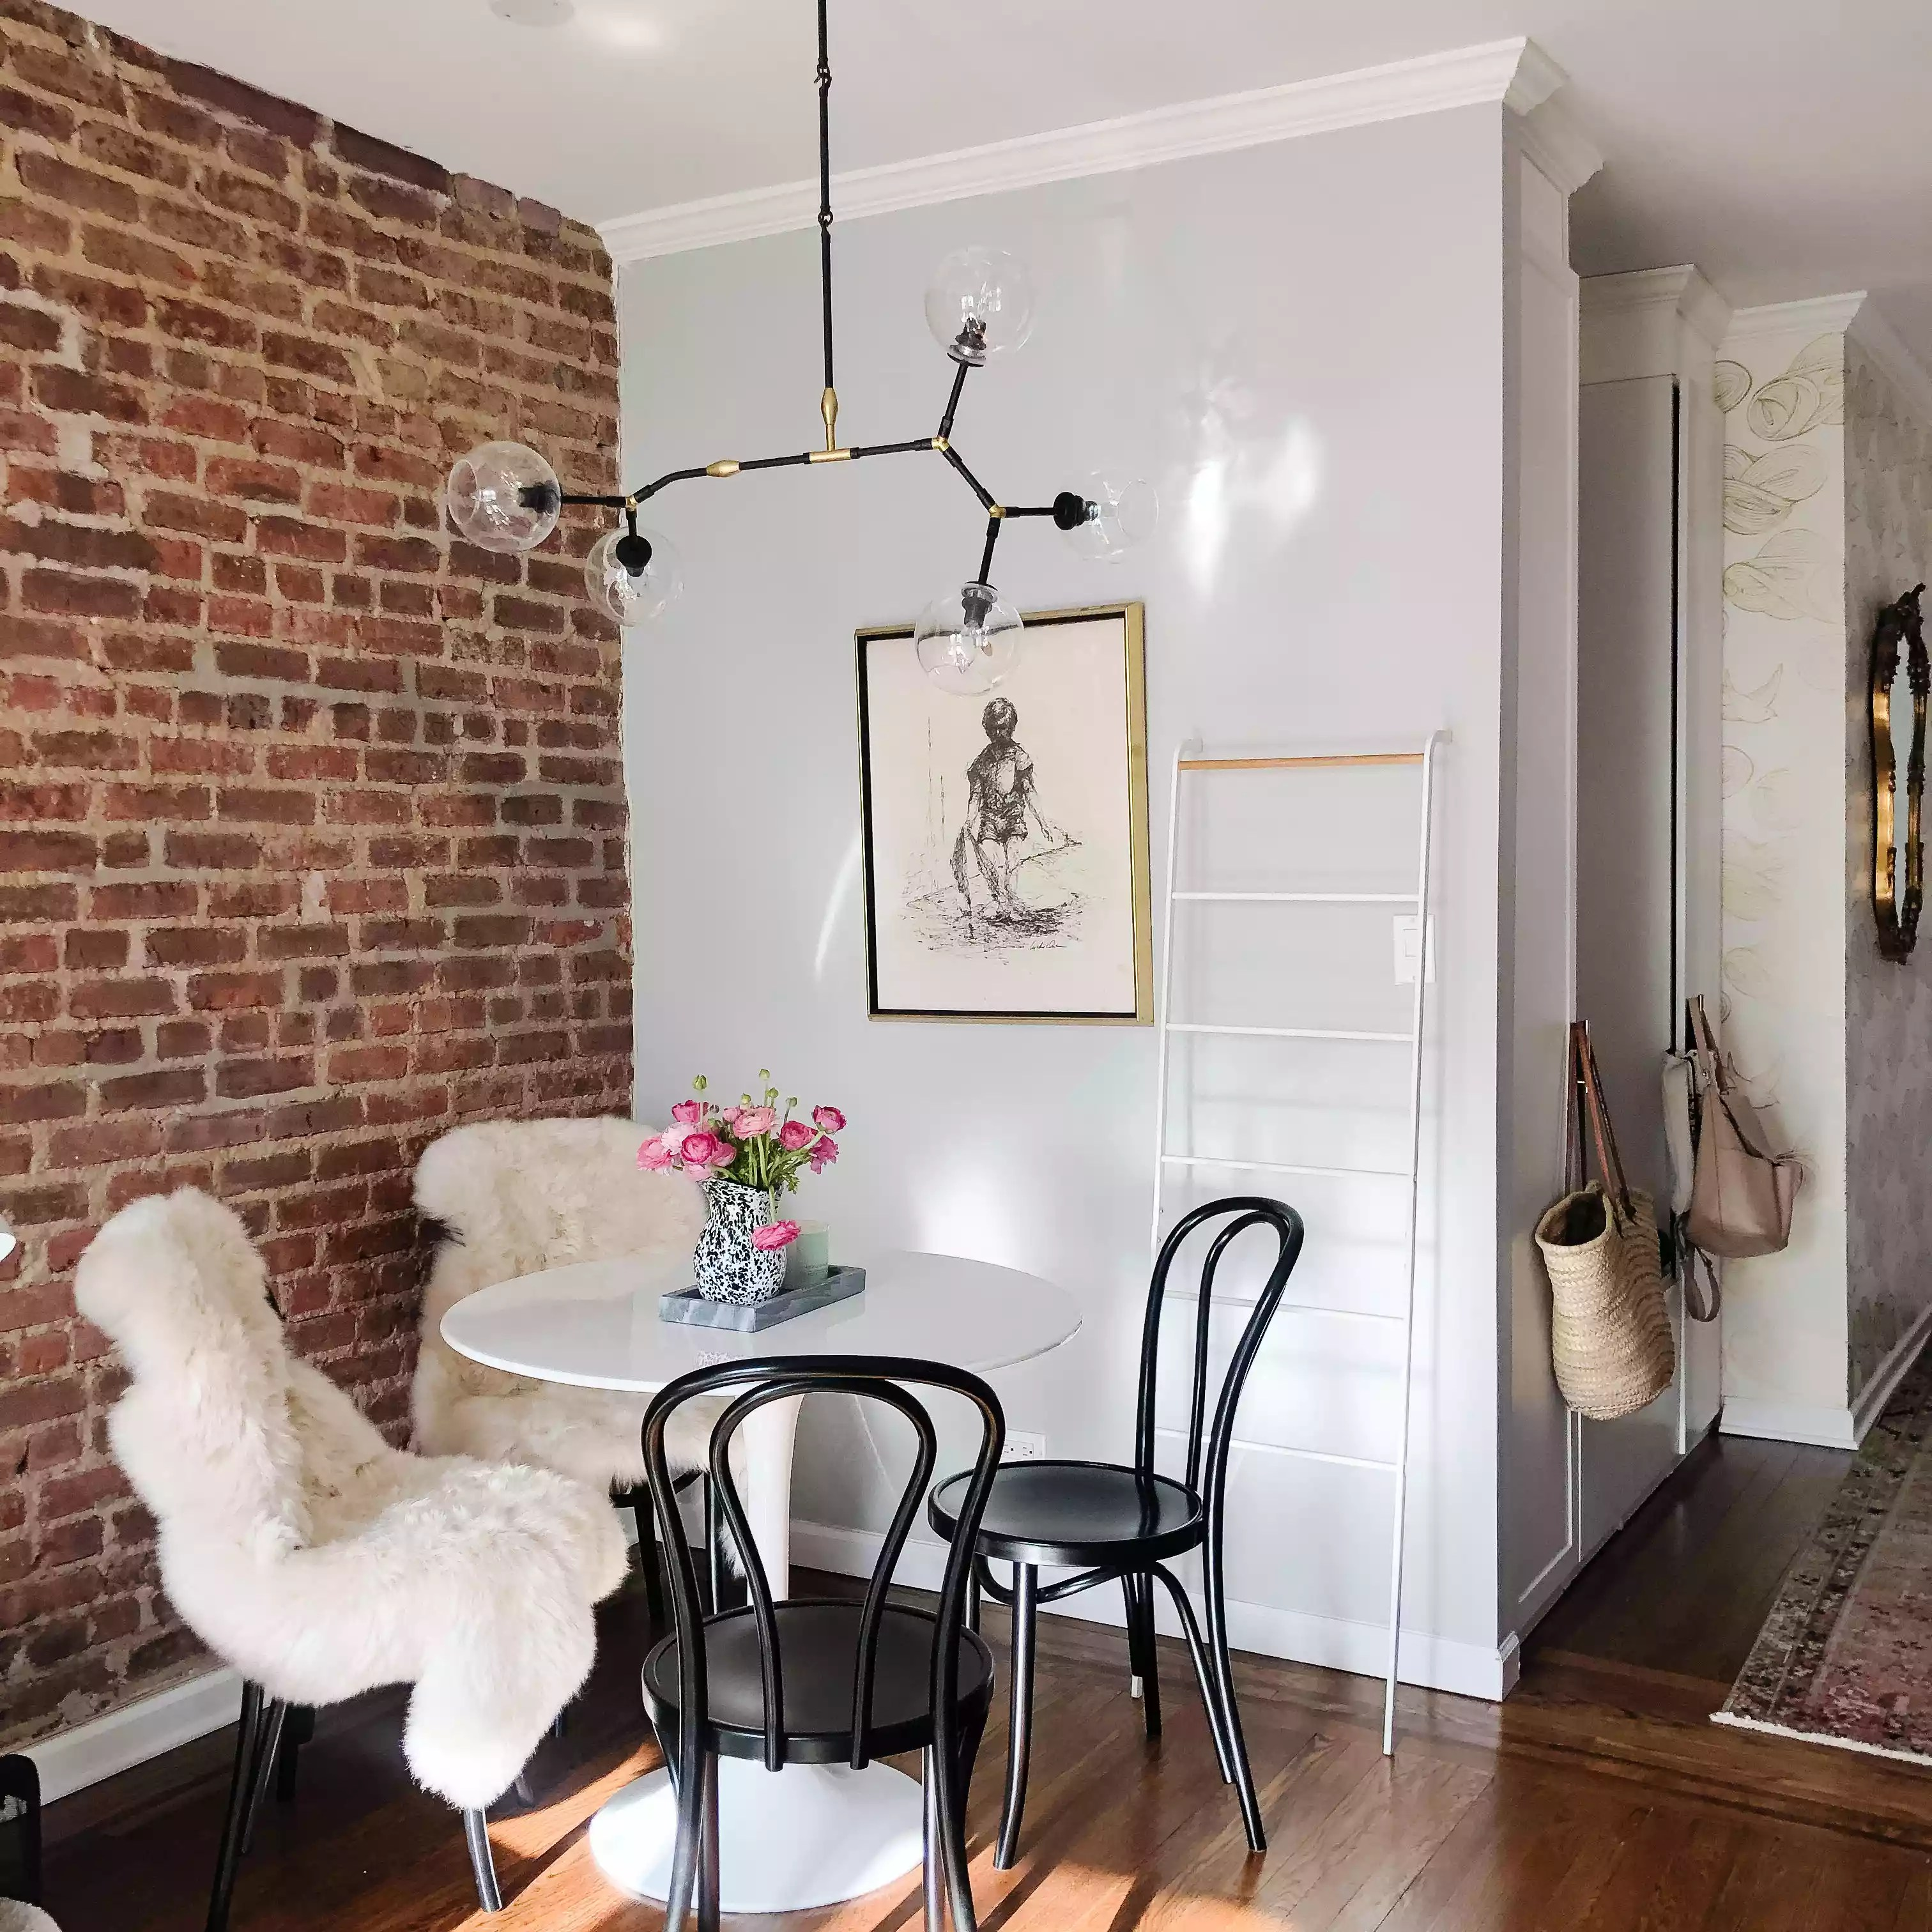 Small dining nook against brick wall.